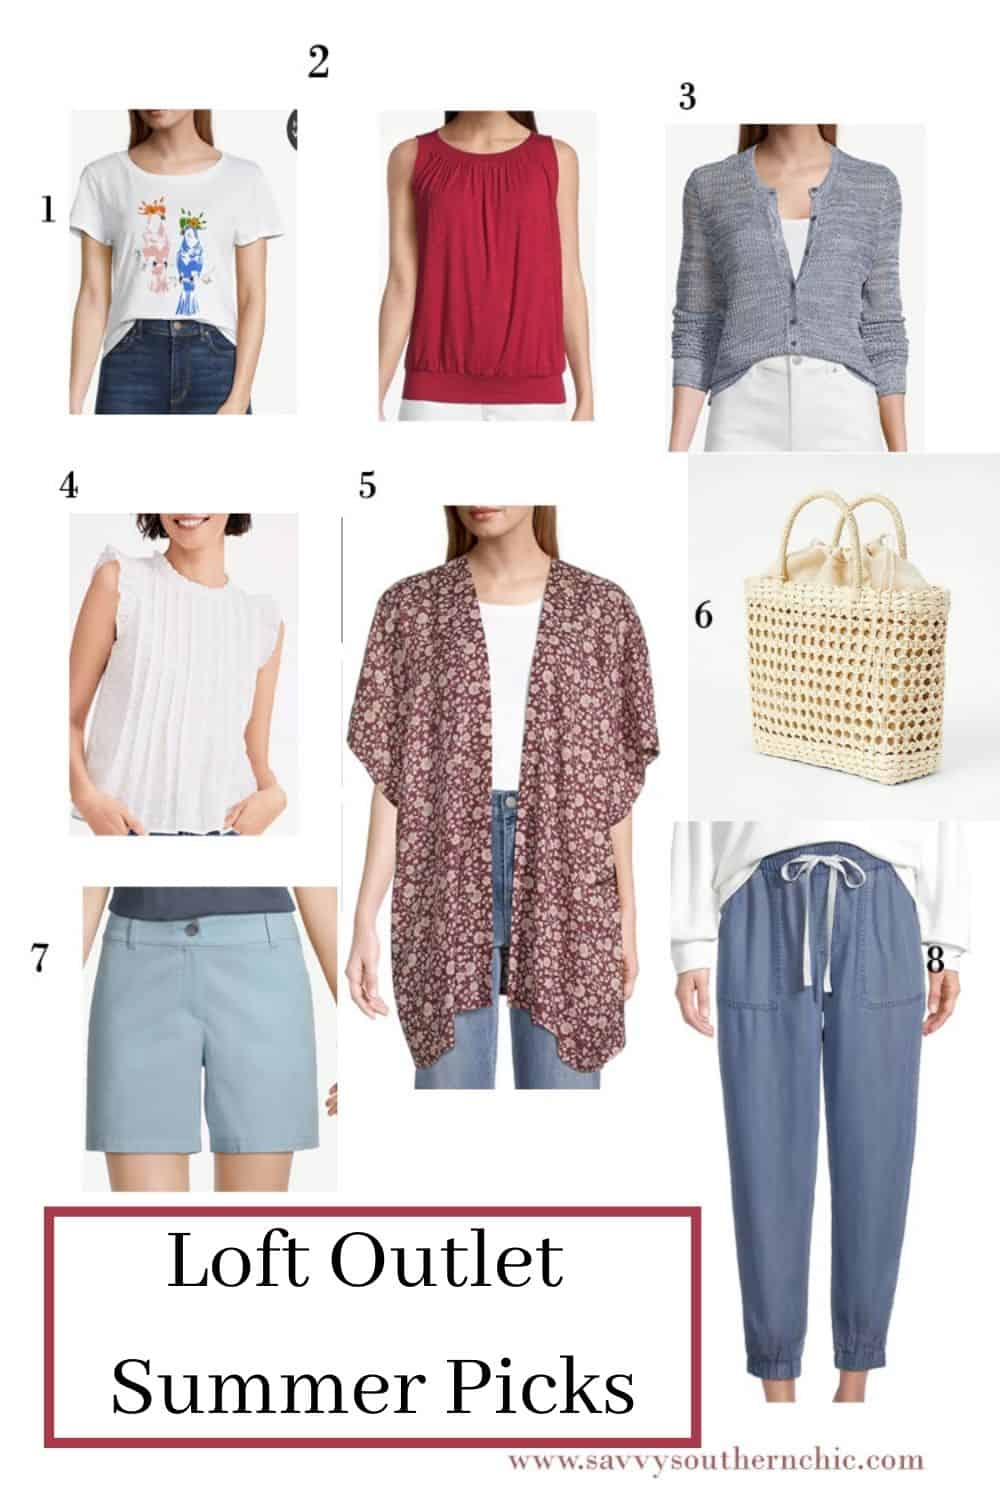 Summer clothes from Loft Outlet